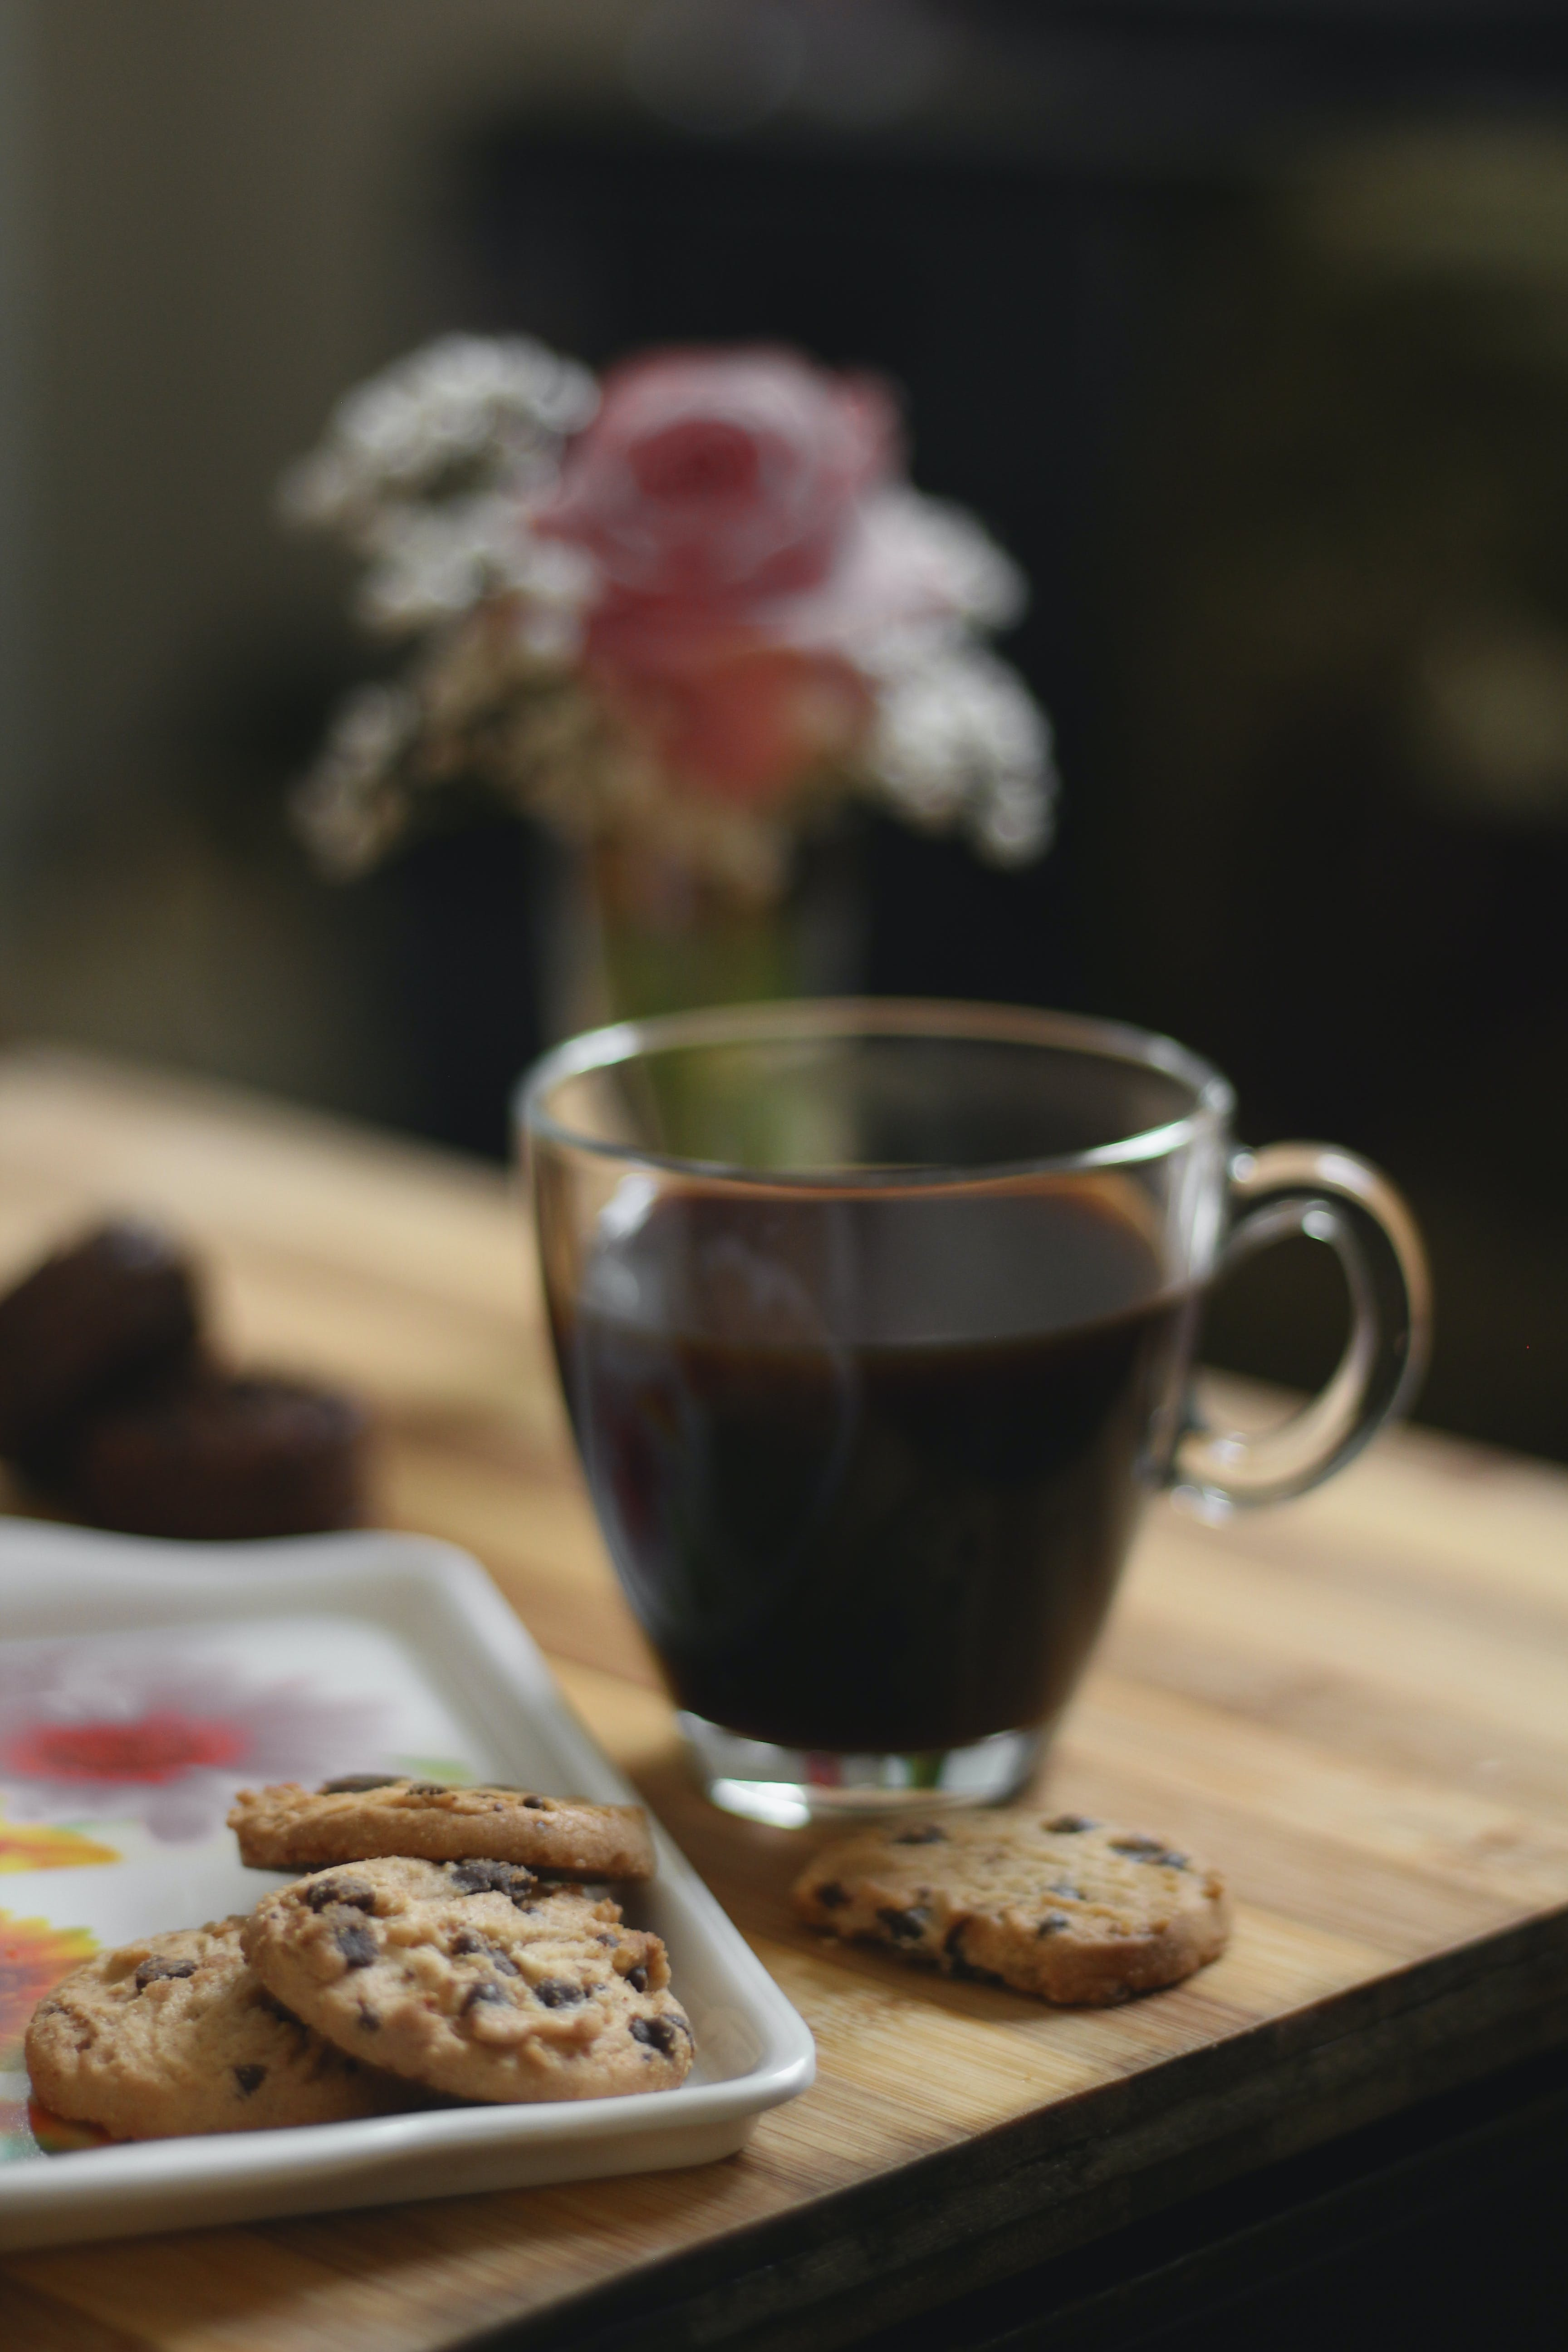 Glass Teacup Beside a Cookies on Tray Placed on Table